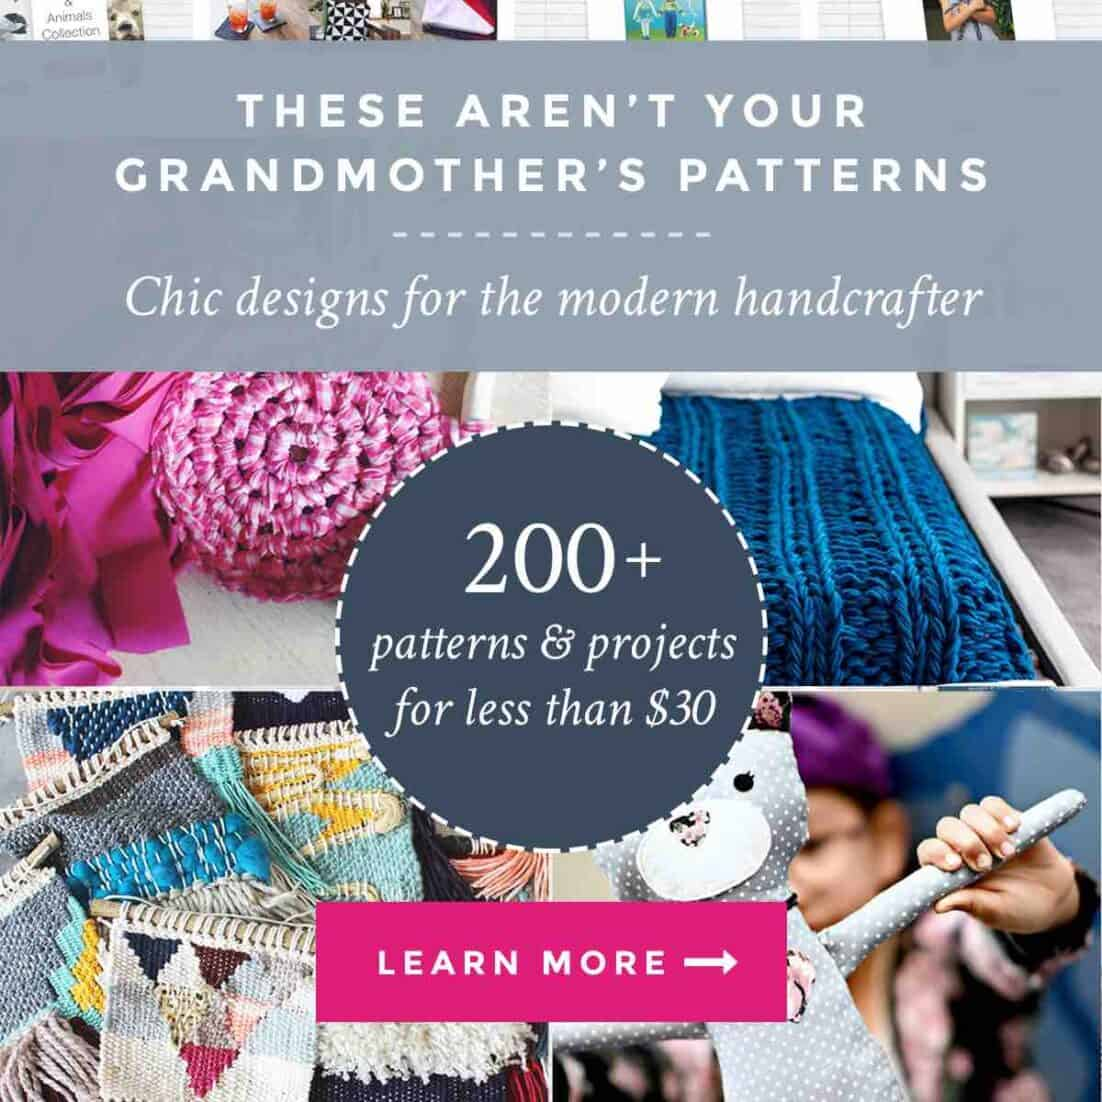 The Handmade With Love Super Bundle from Ultimate Bundles is here - tons of DIY patterns and inspiration for crafters. Sewing, knitting, crocheting - name your creative outlet.